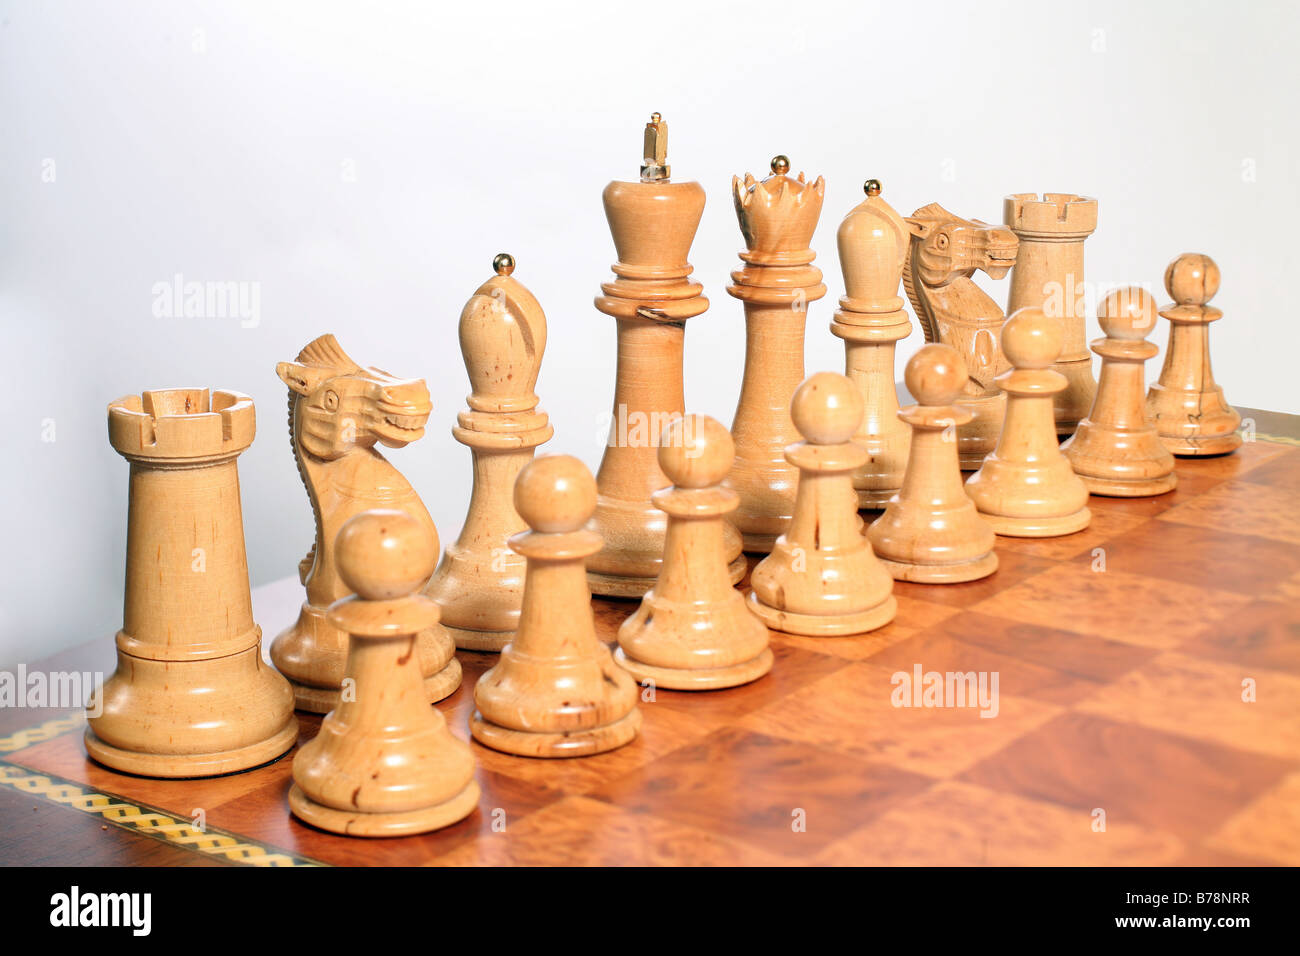 The white pieces set up on a chessboard. - Stock Image